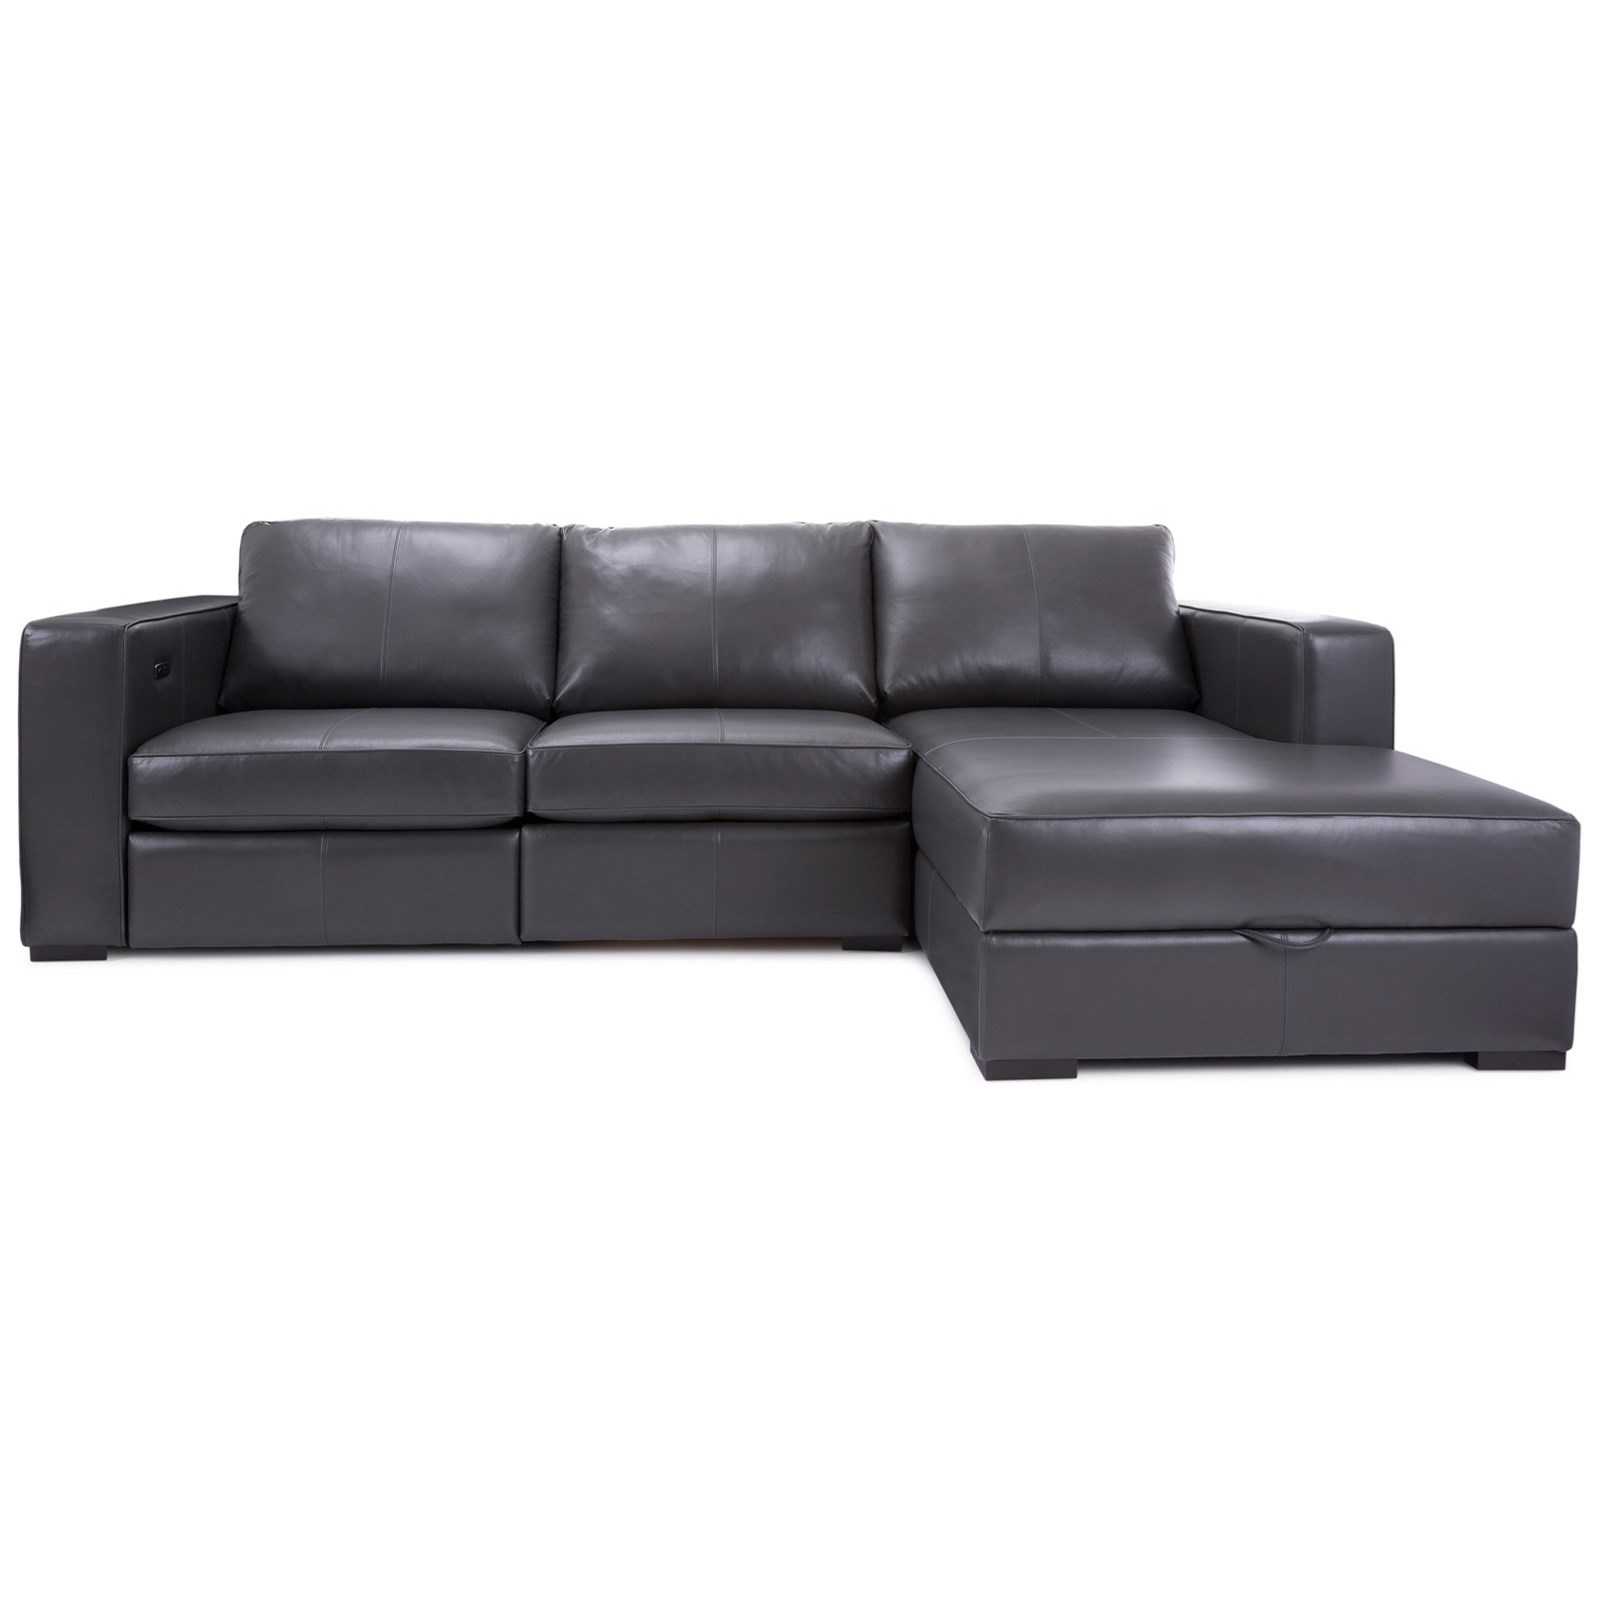 2900 Reclining Sofa with Chaise by Decor-Rest at Rooms for Less